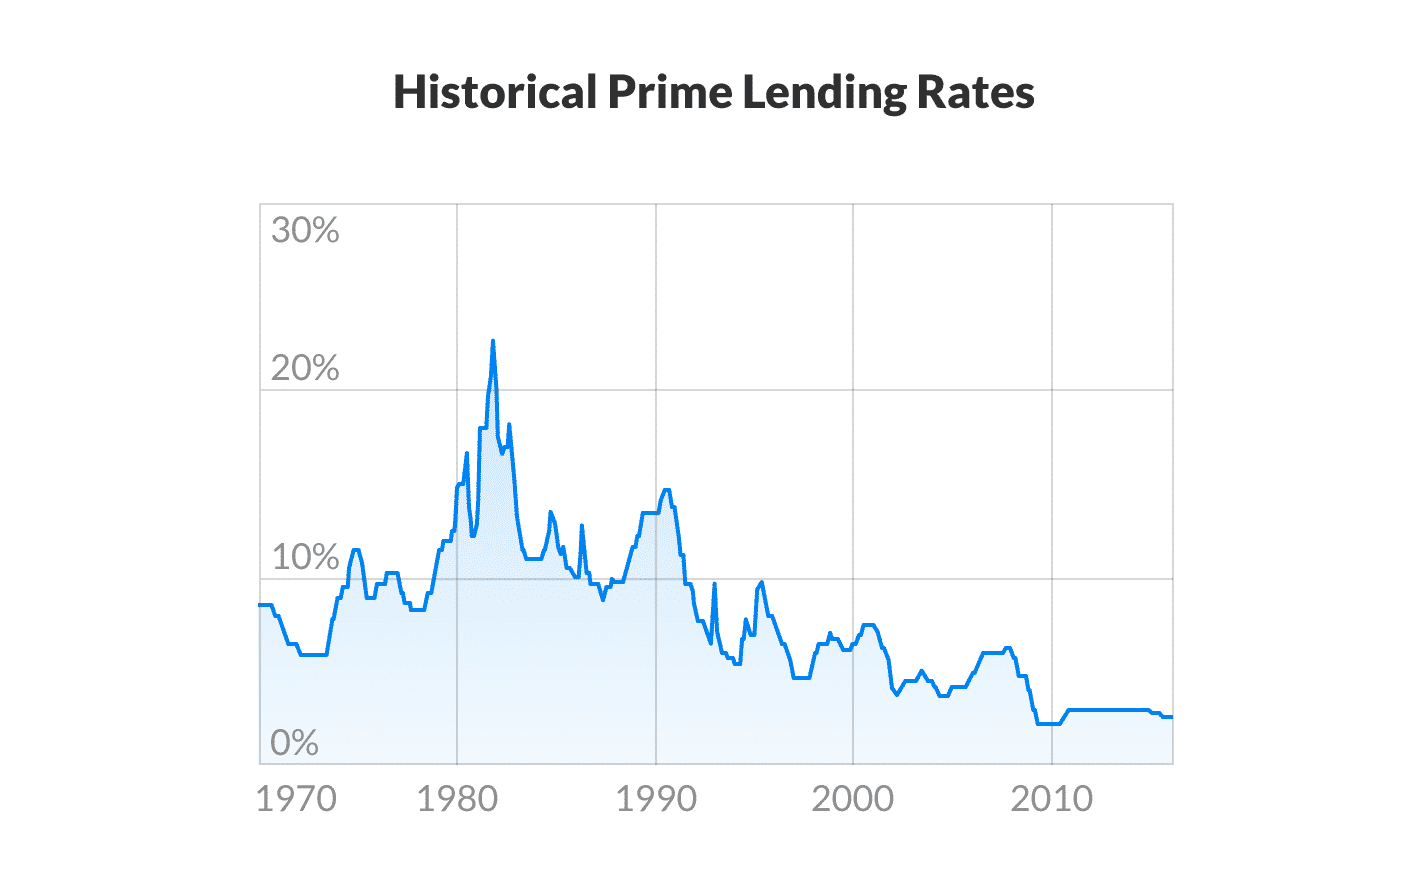 The Canadian Prime Rate since 1970 according to the Bank of Canada